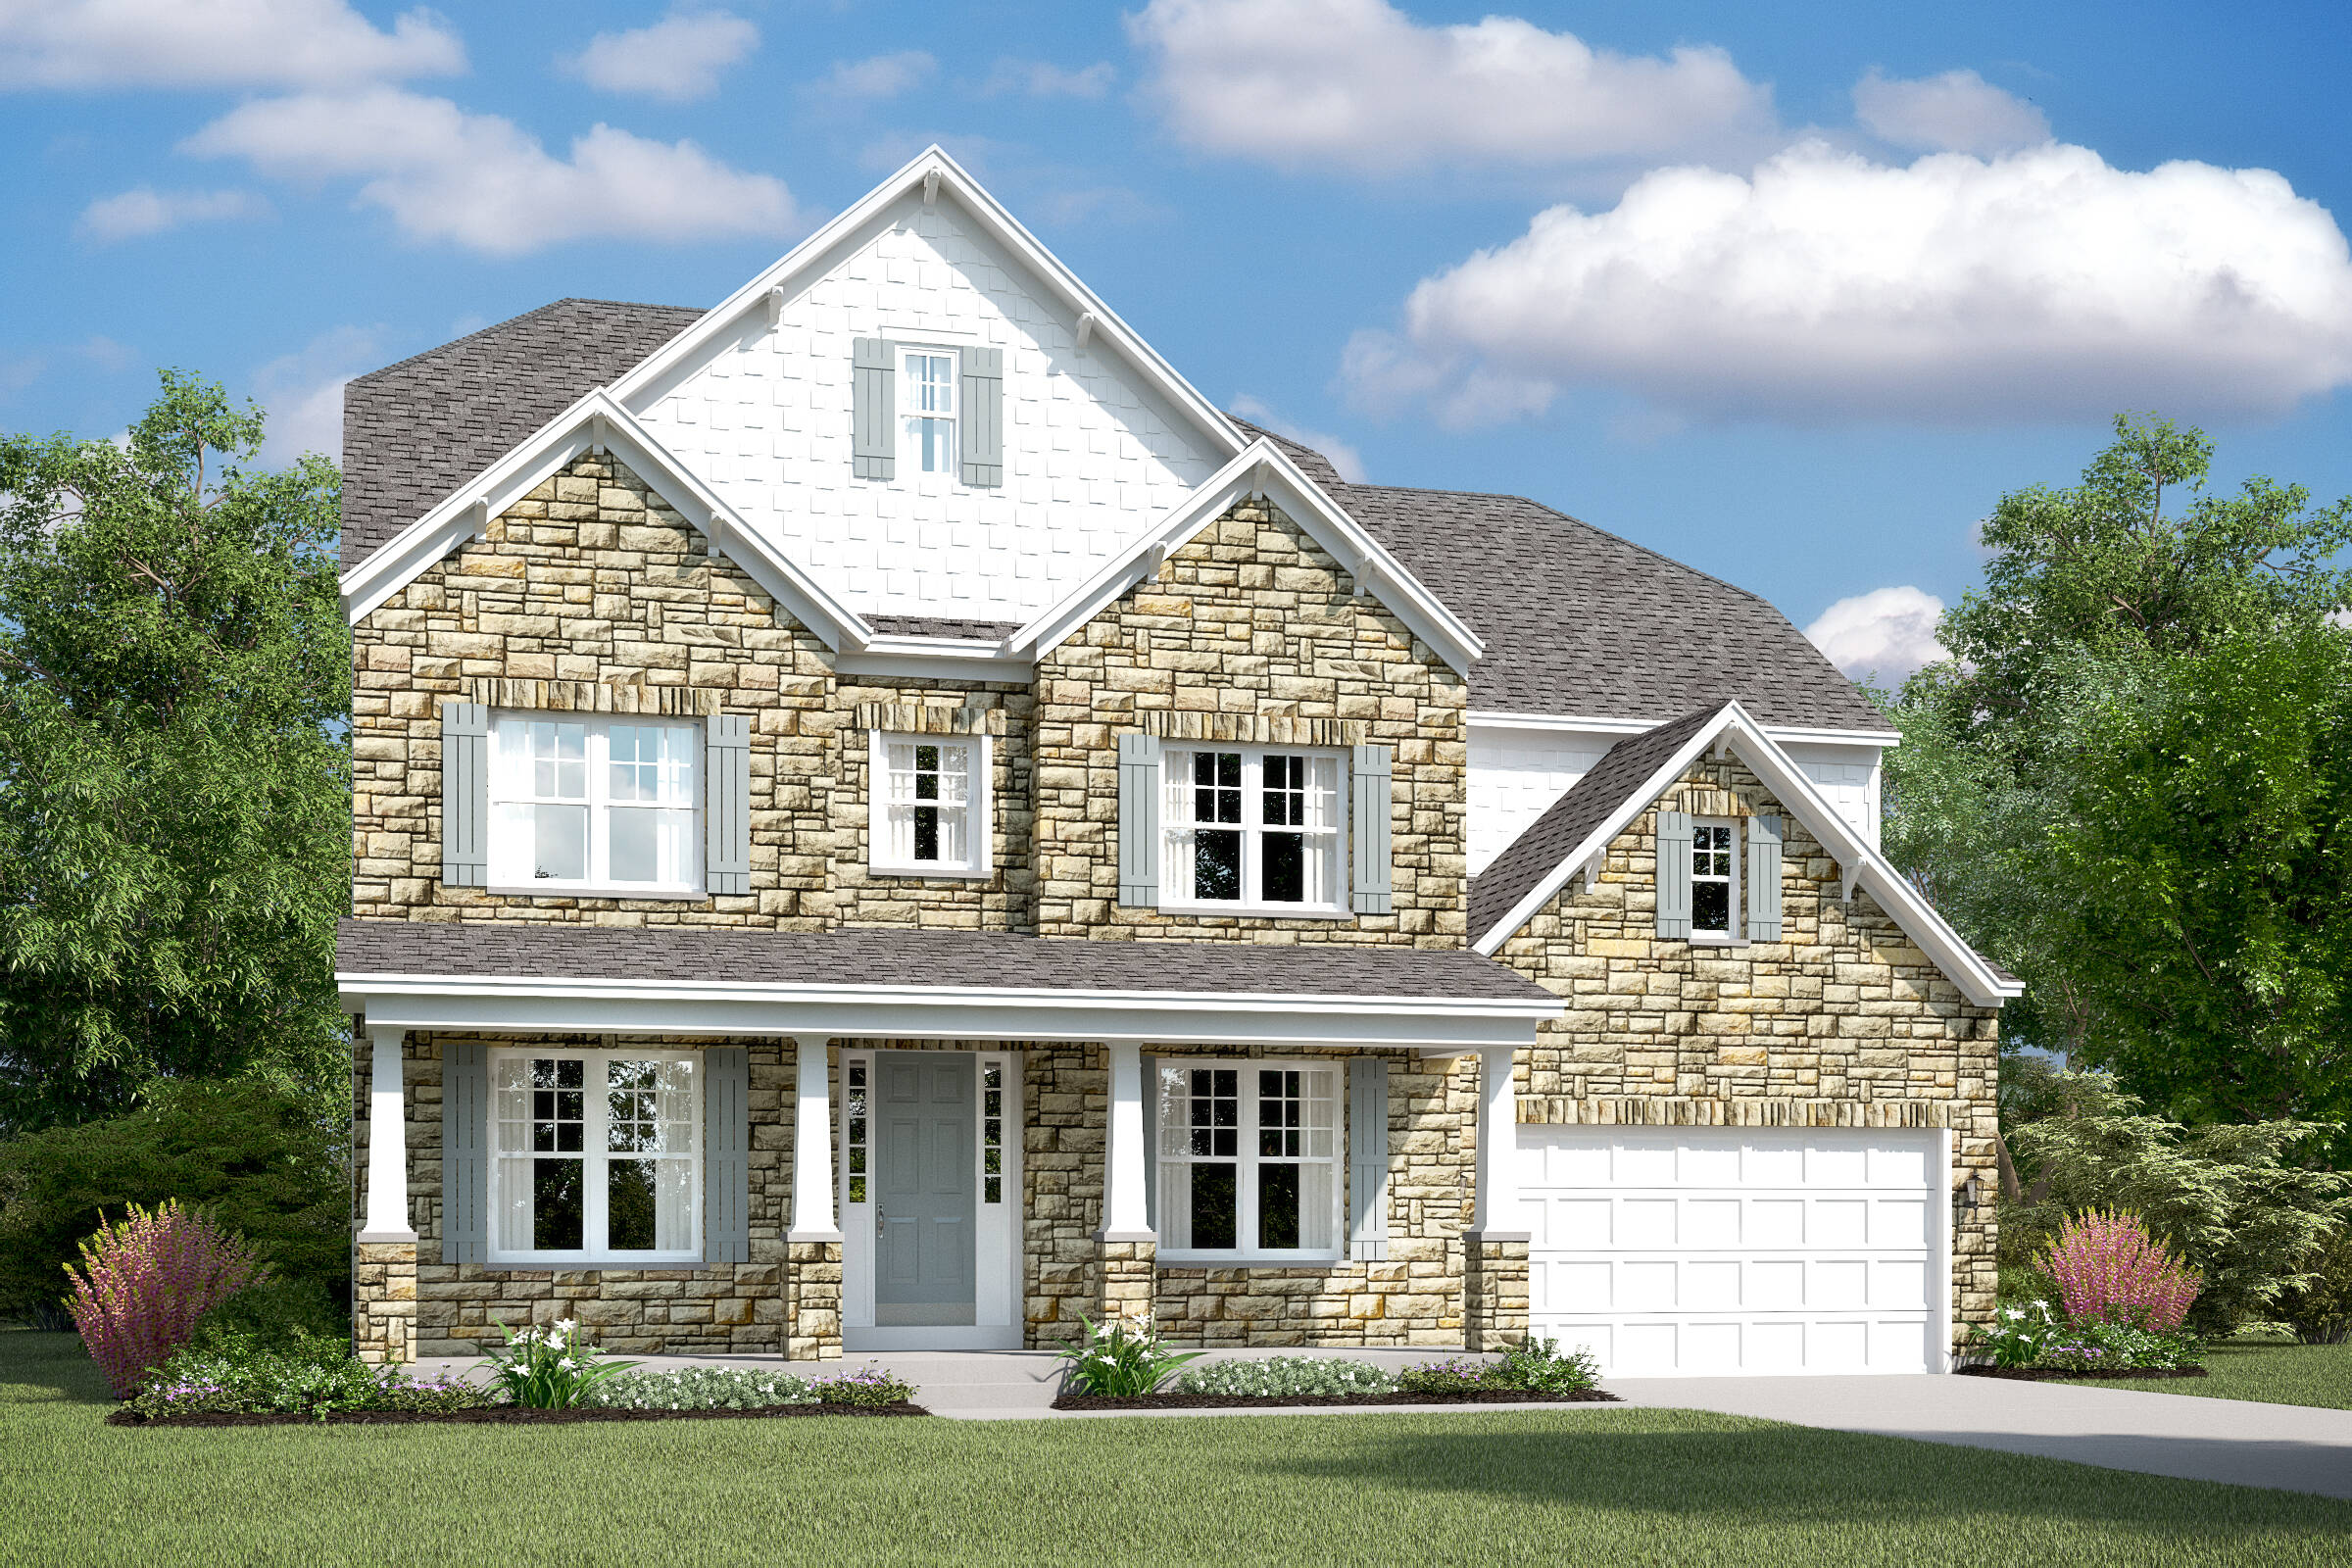 berwyn f new homes at burke junction in virginia